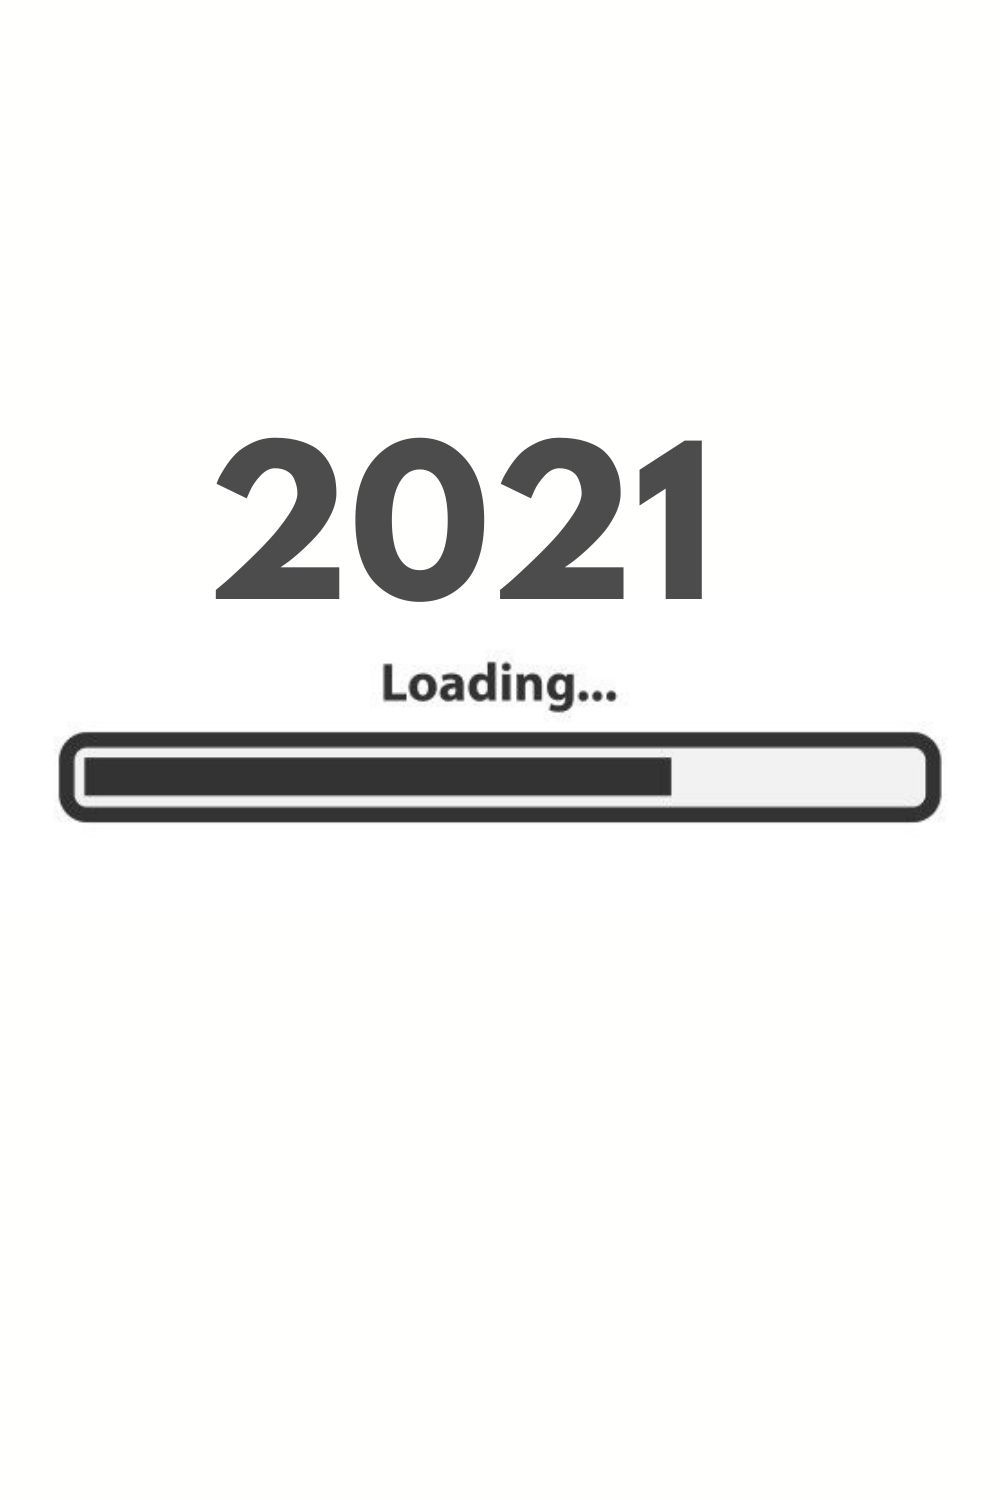 New Year Loading Wallpaper 2021 Backgrounds Iphone New Year Wallpaper Happy New Year Pictures Happy New Year Photo